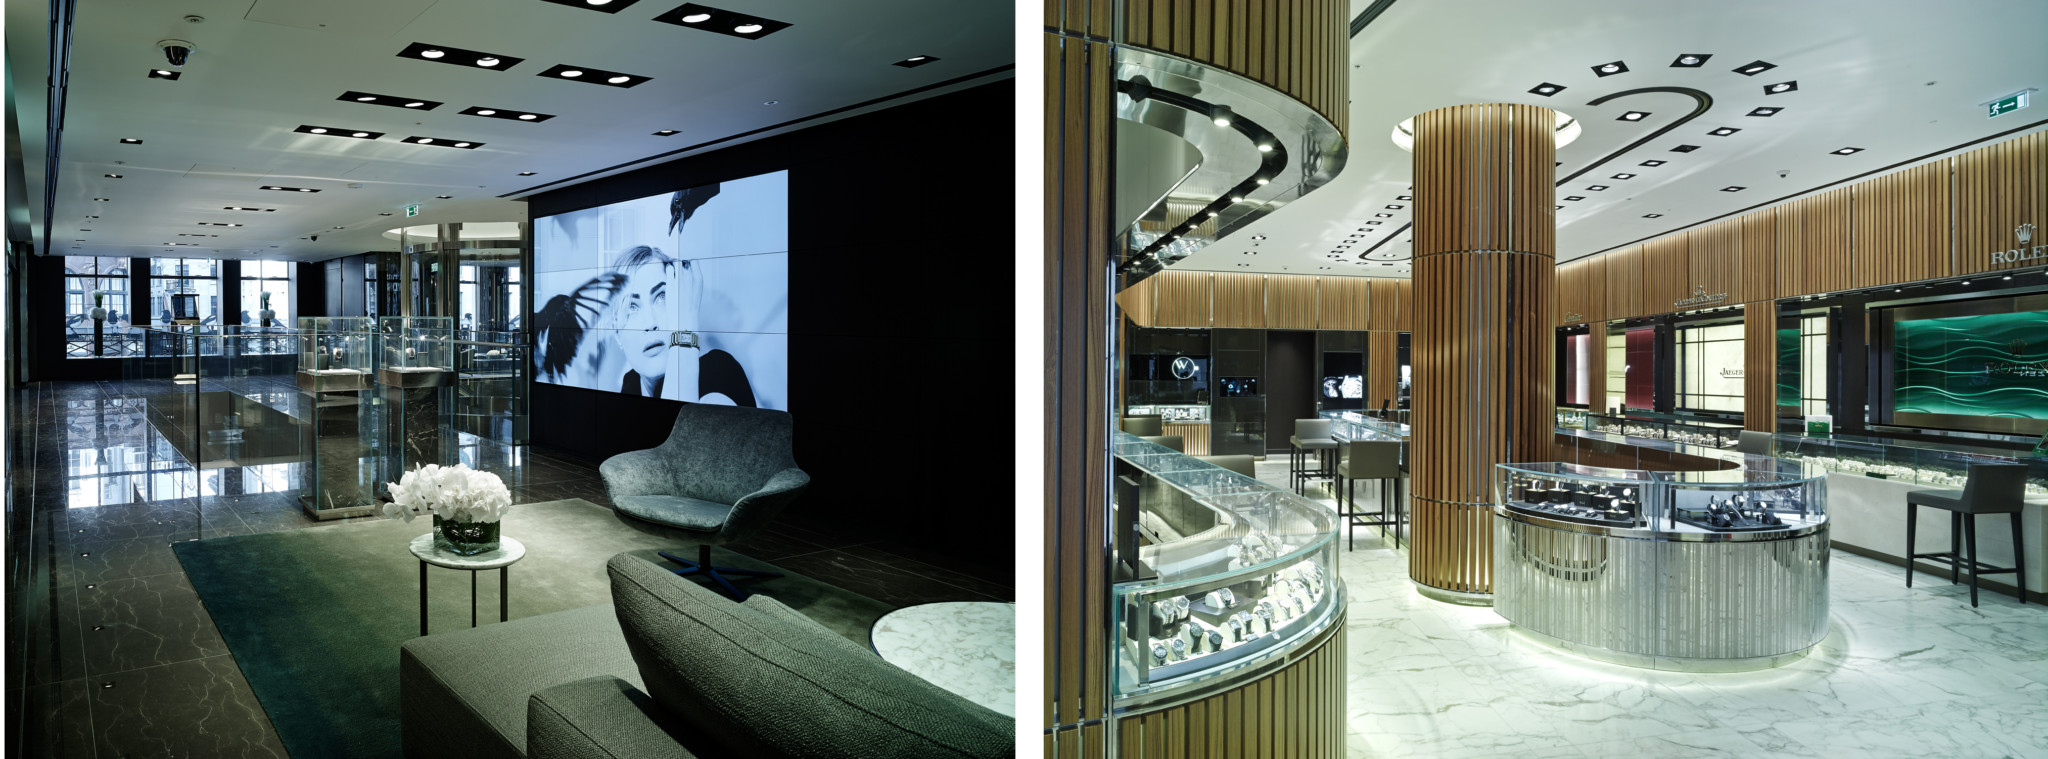 The luxurious and innovative retail environment of stores like Watches of Switzerland's Regent Street flagship is setting a new global standard that is leaving the rest of the world lagging behind.